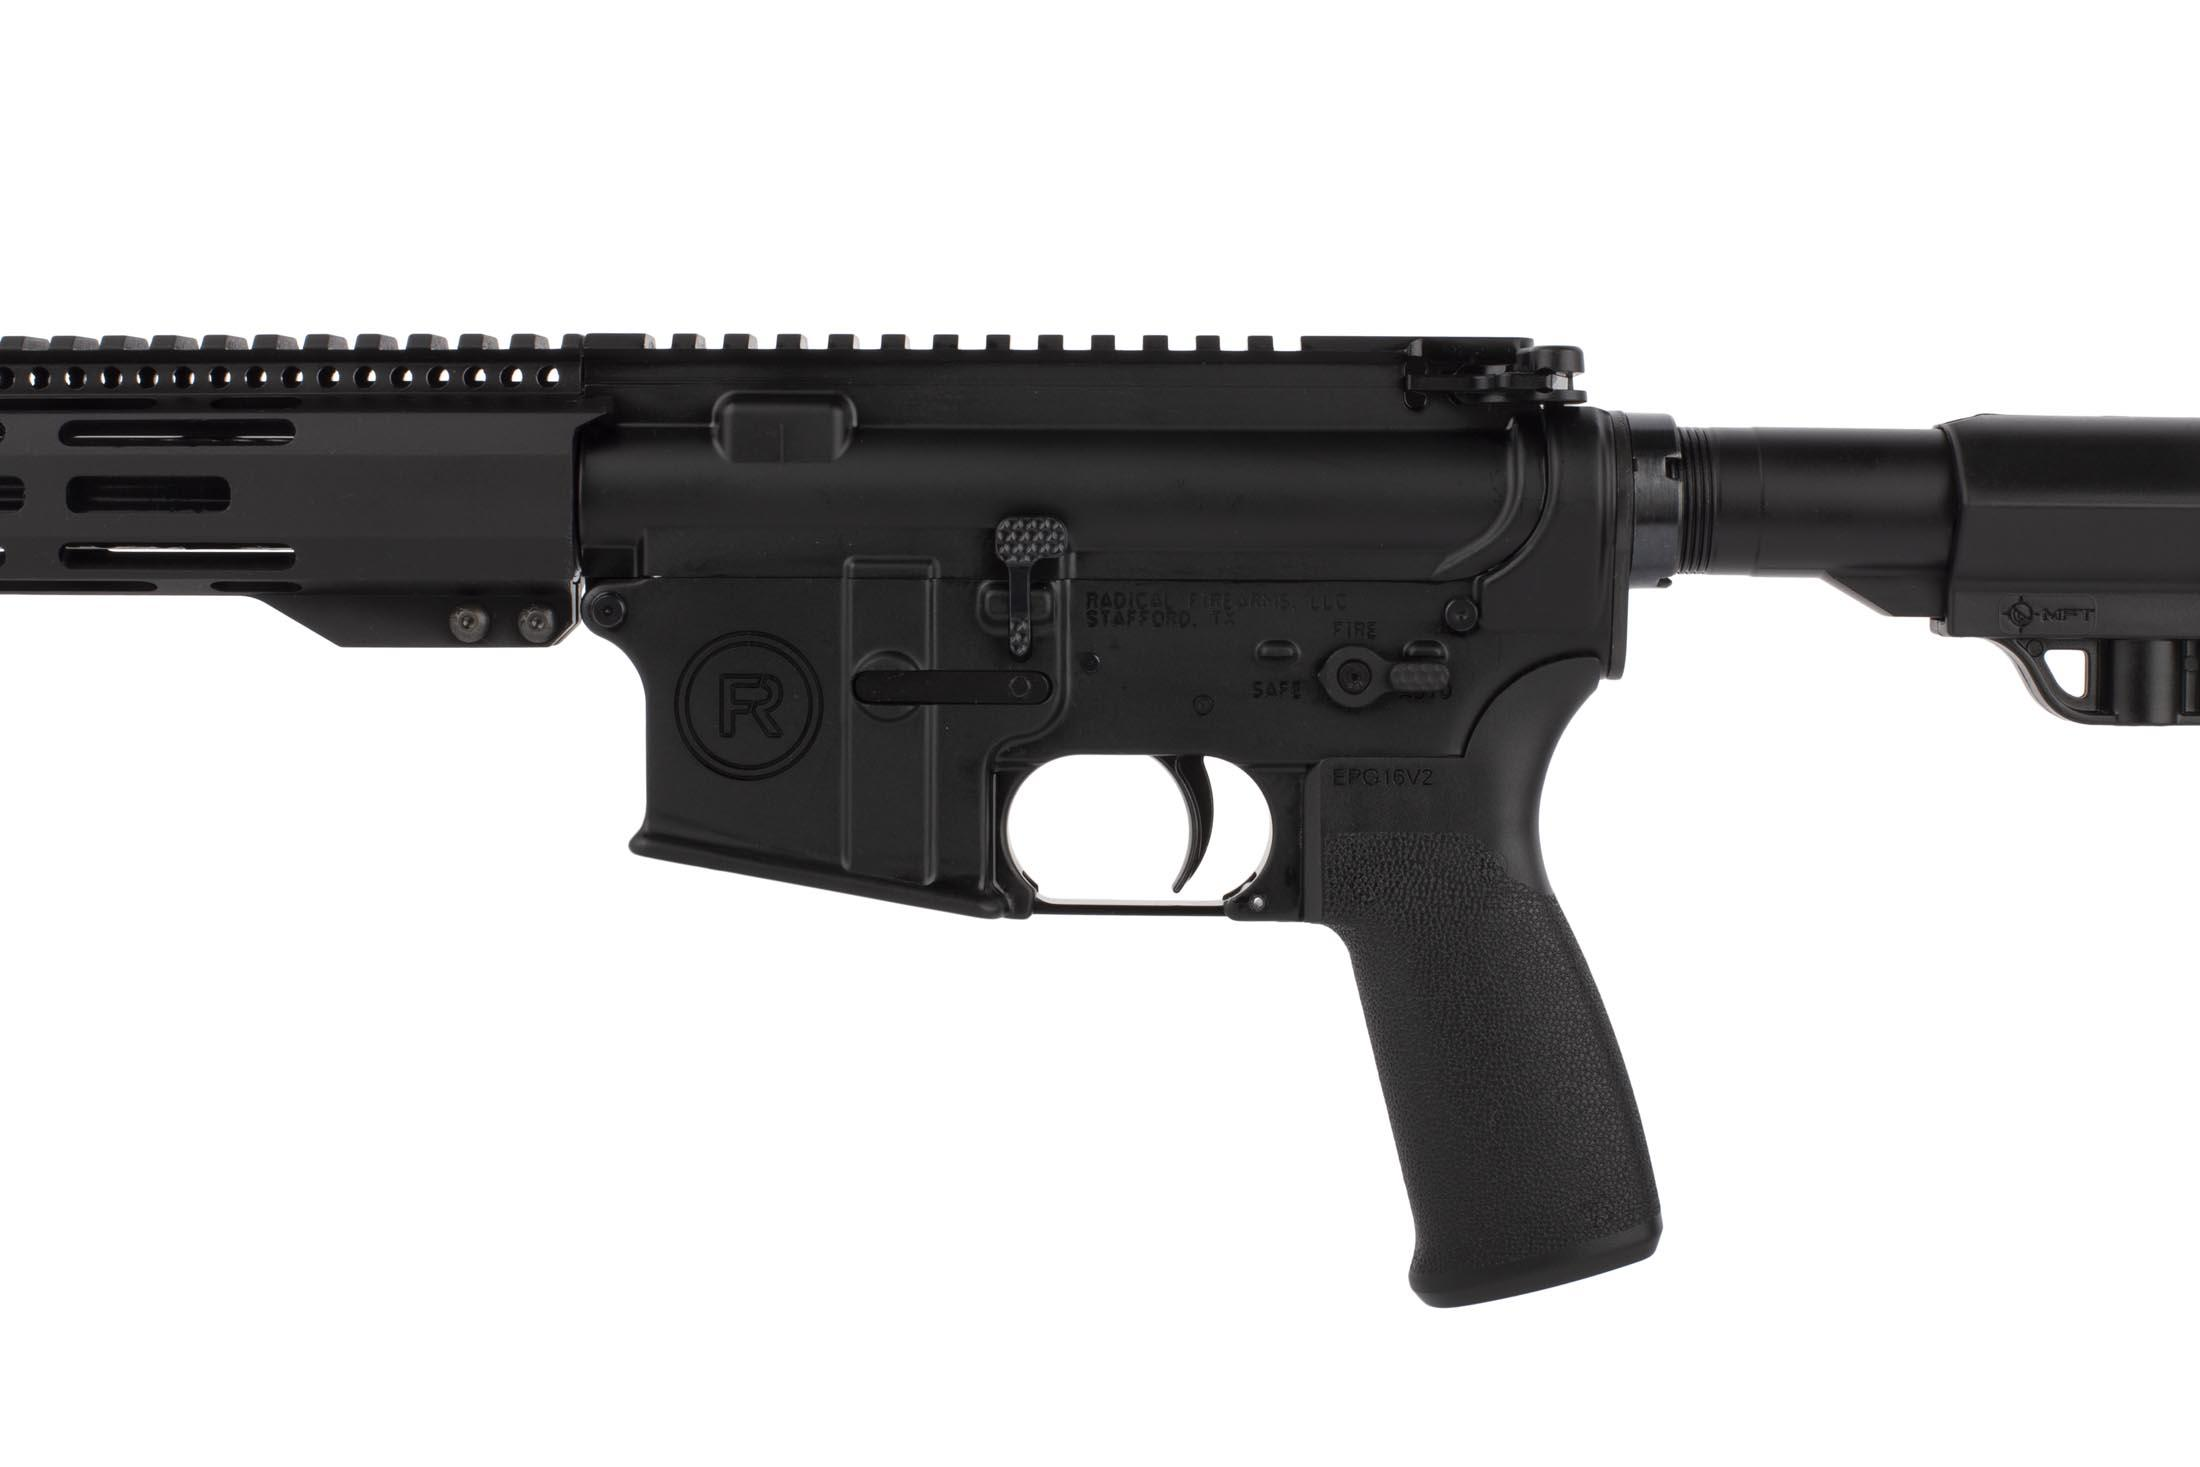 Radical Firearms 16in 7.62x39mm with Mission First Tactical grip